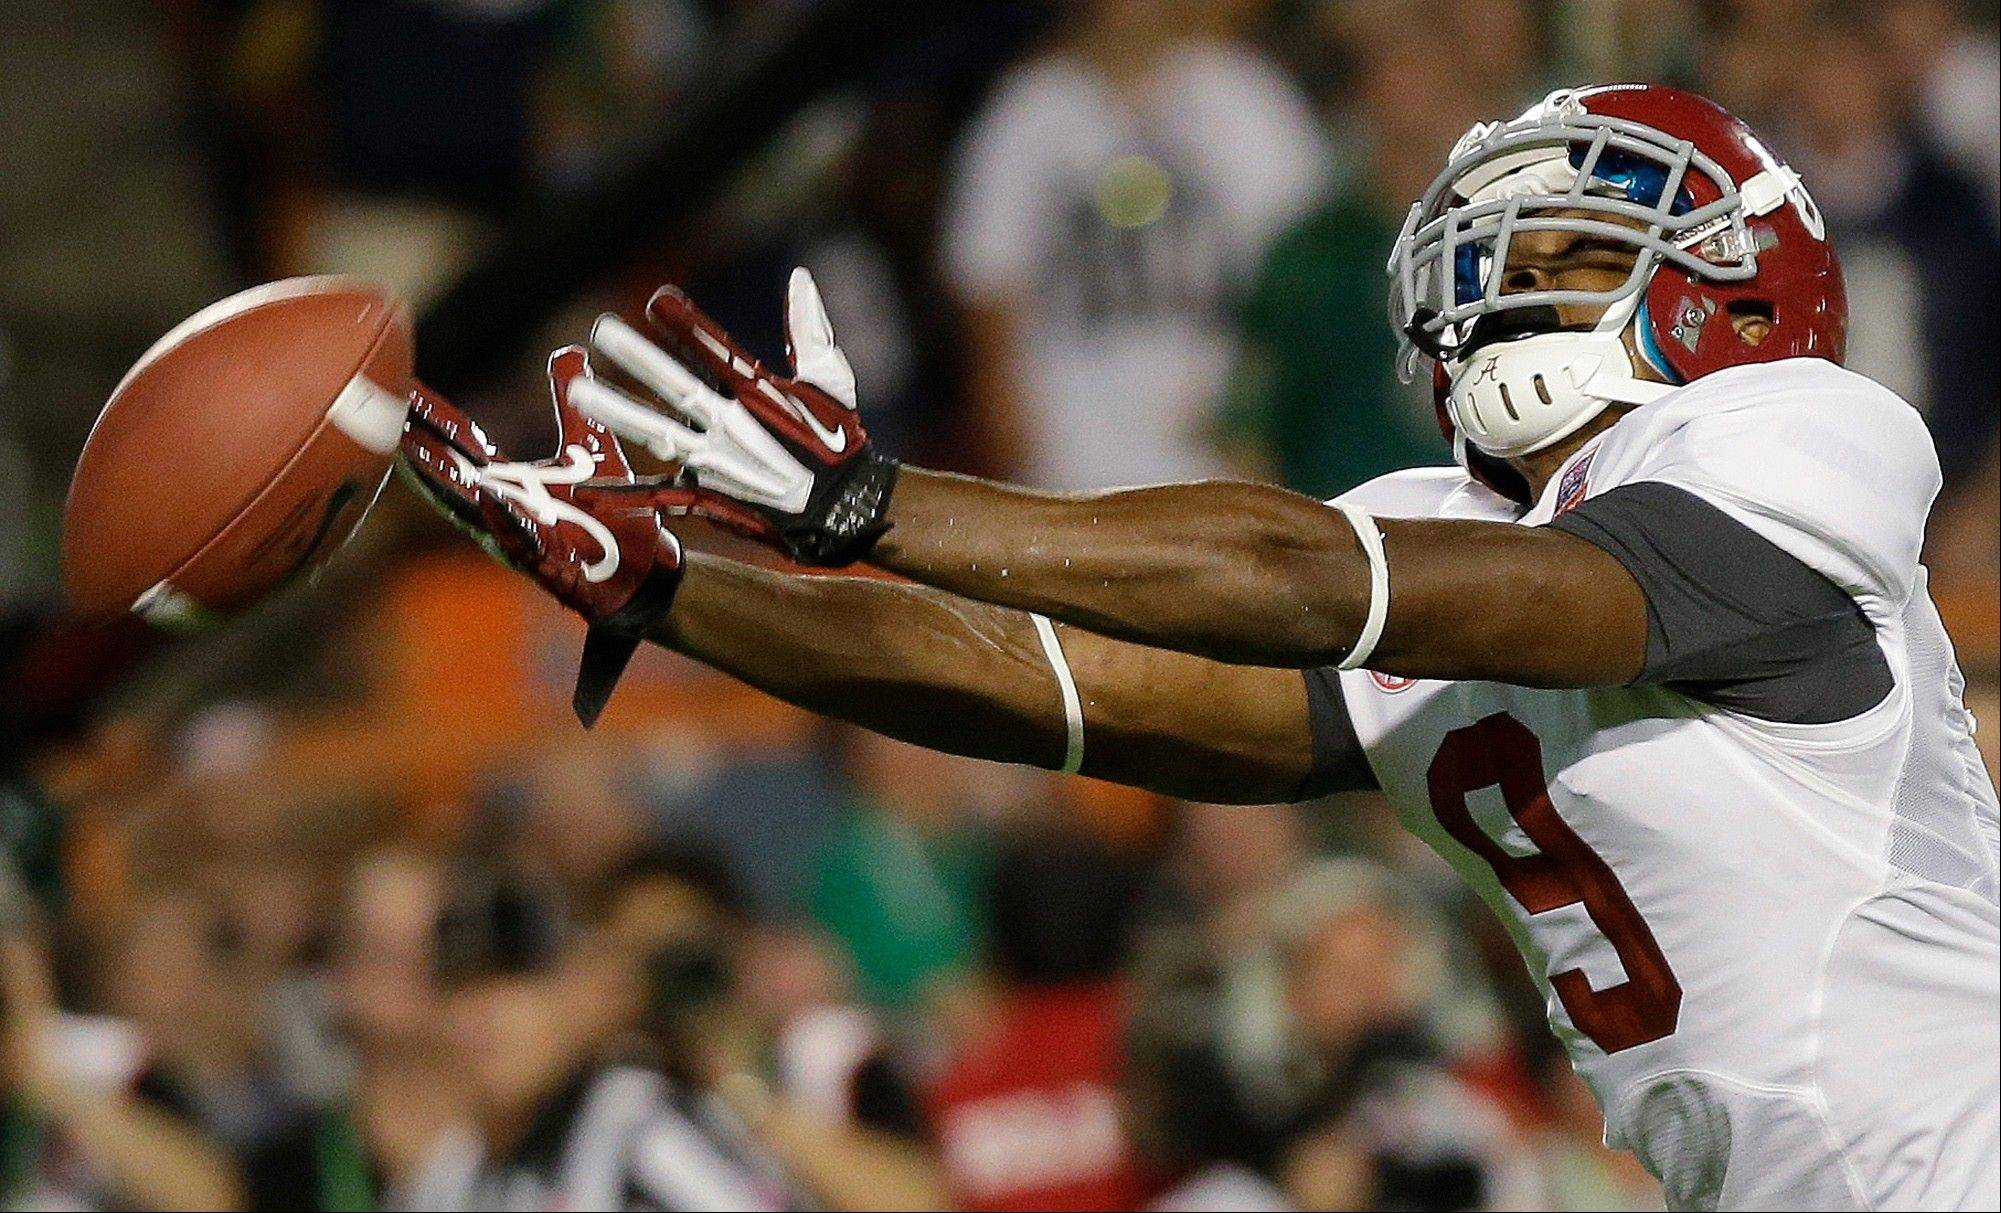 Alabama wide receiver Amari Cooper can't quite come up with a reception during the first half of the BCS National Championship college football game against Notre Dame Monday, Jan. 7, 2013, in Miami.